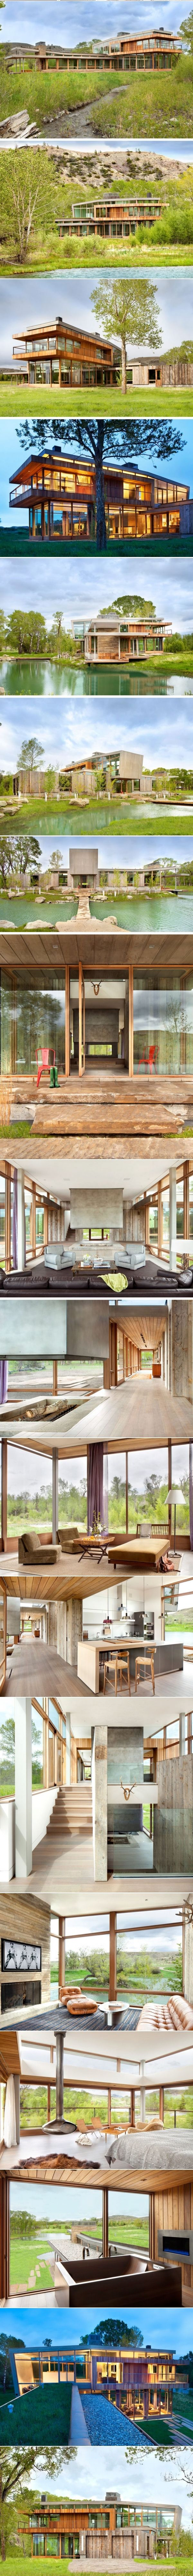 This Riverside House Lives Among The Hills Of Montana | CONTEMPORIST